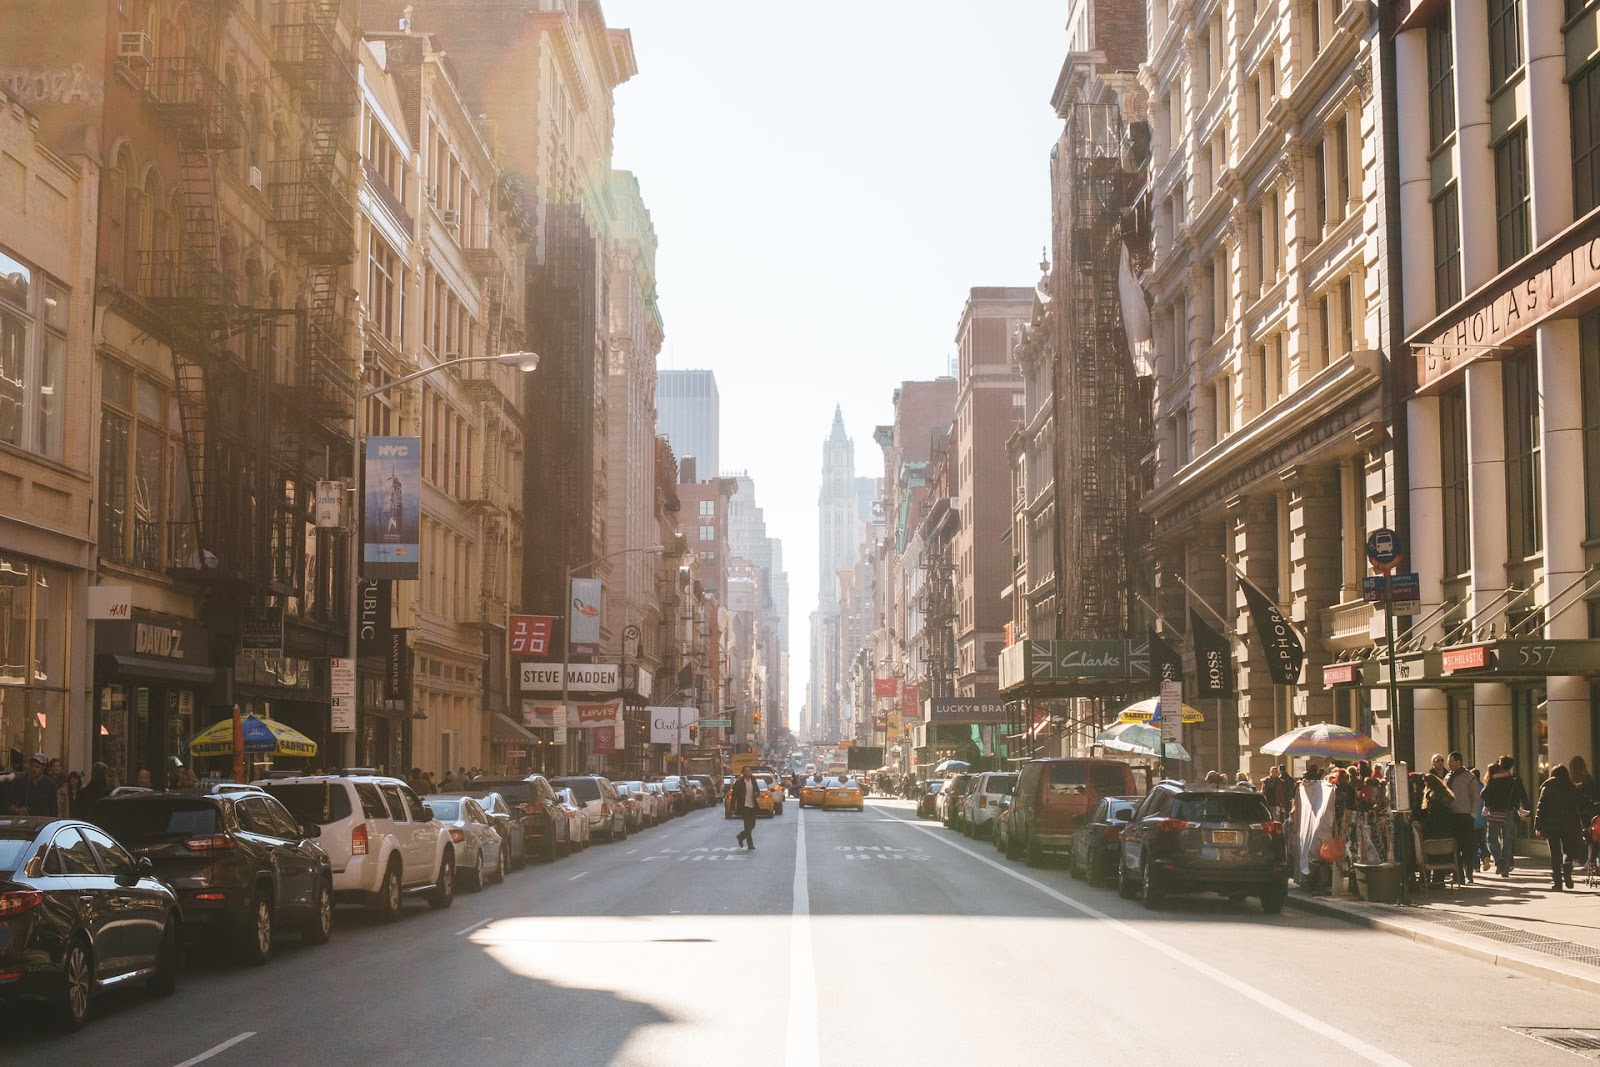 New York - US vacation rental recovery - short term rental occupancy